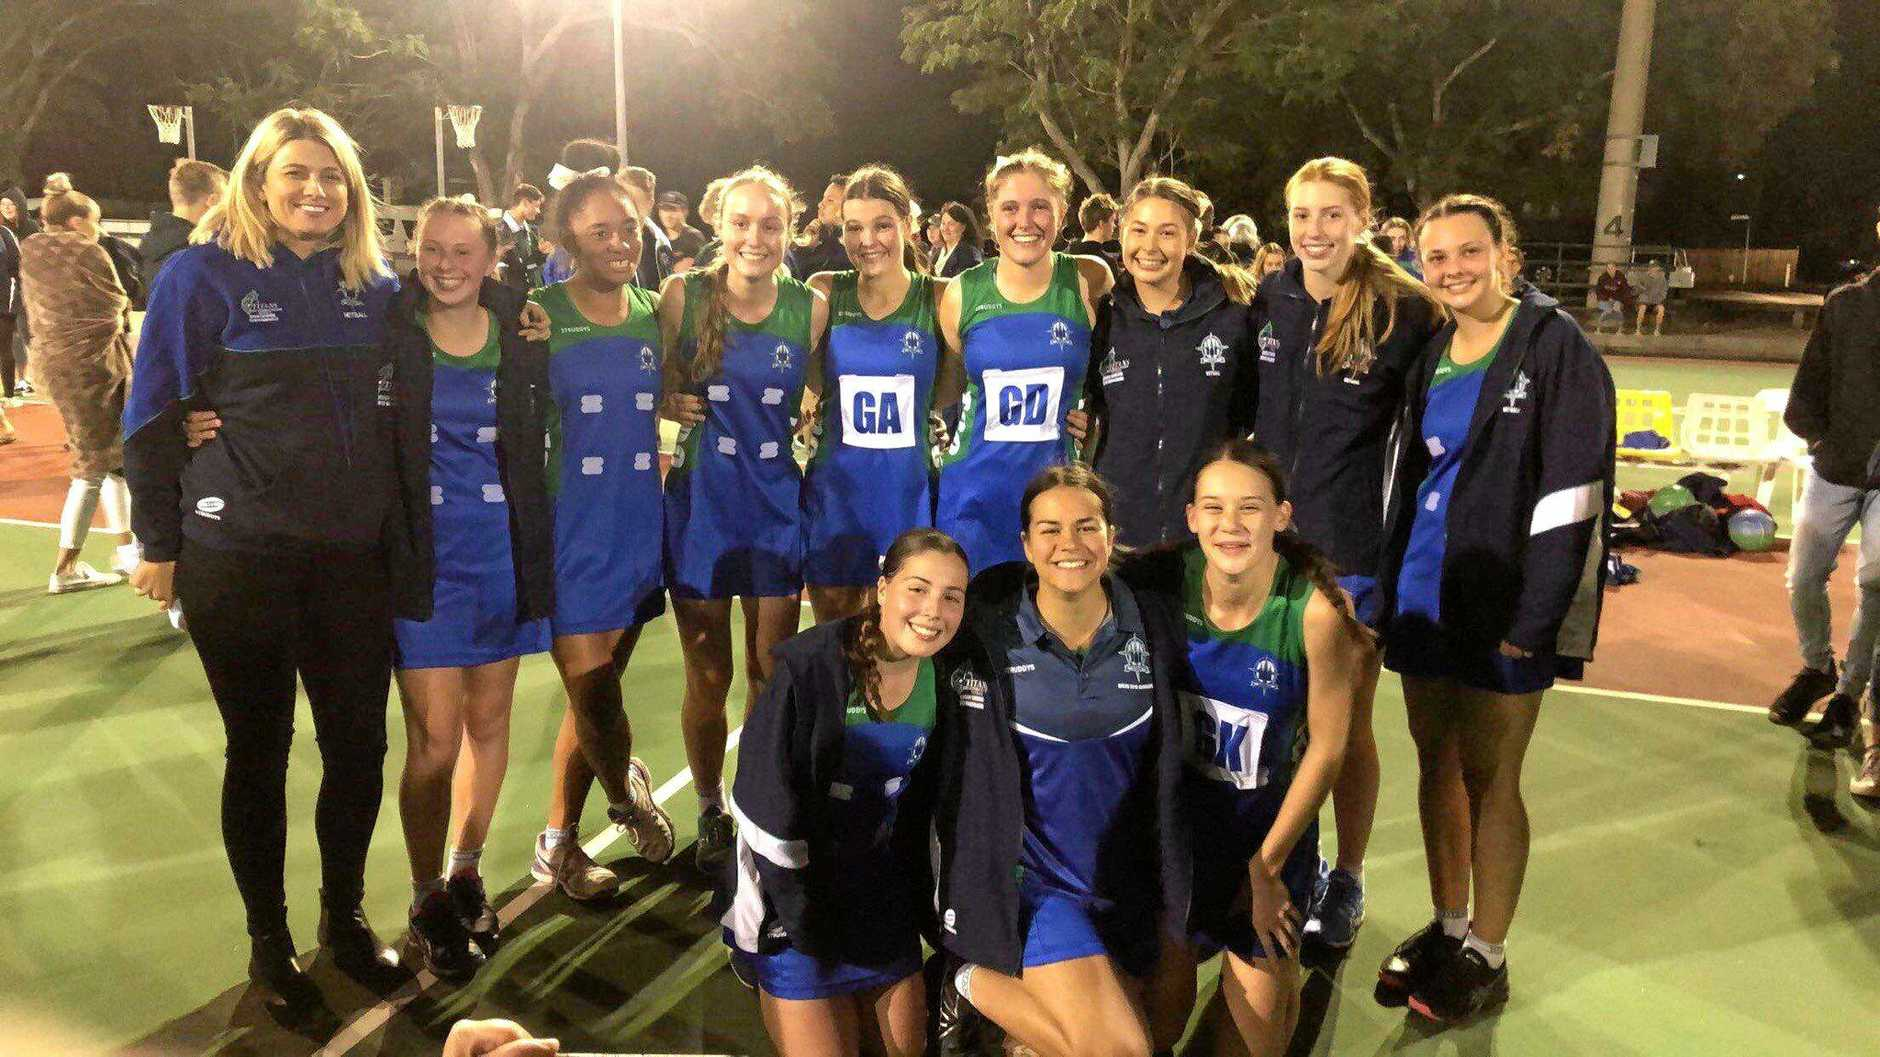 CHAMPIONS: The victorious TCC team with coach Renee Williams after their grand final win over Rockhampton Grammar School.